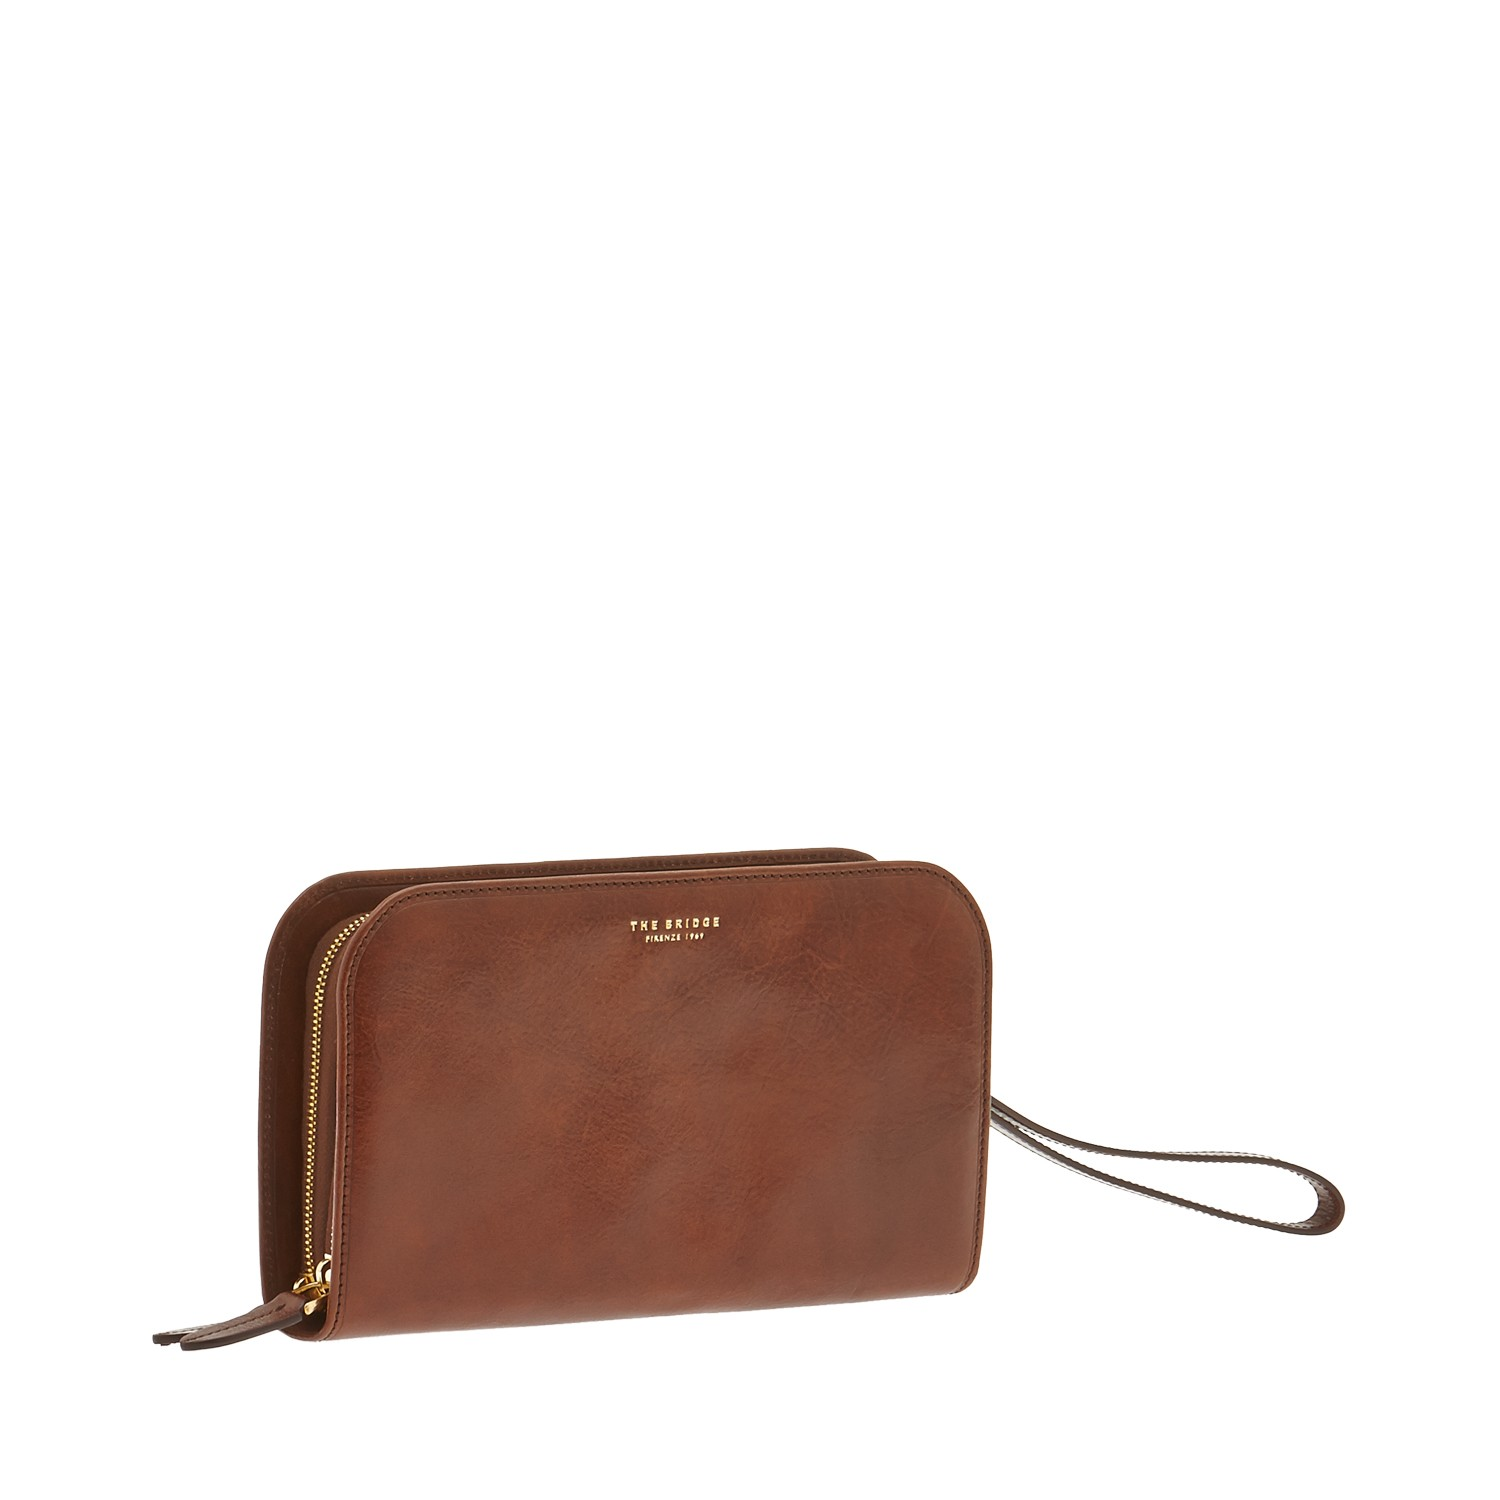 BORSELLO THE BRIDGE POCHETTE UOMO 0521341O 14 MARRONE – Buonocore Borse 9ea30405c54